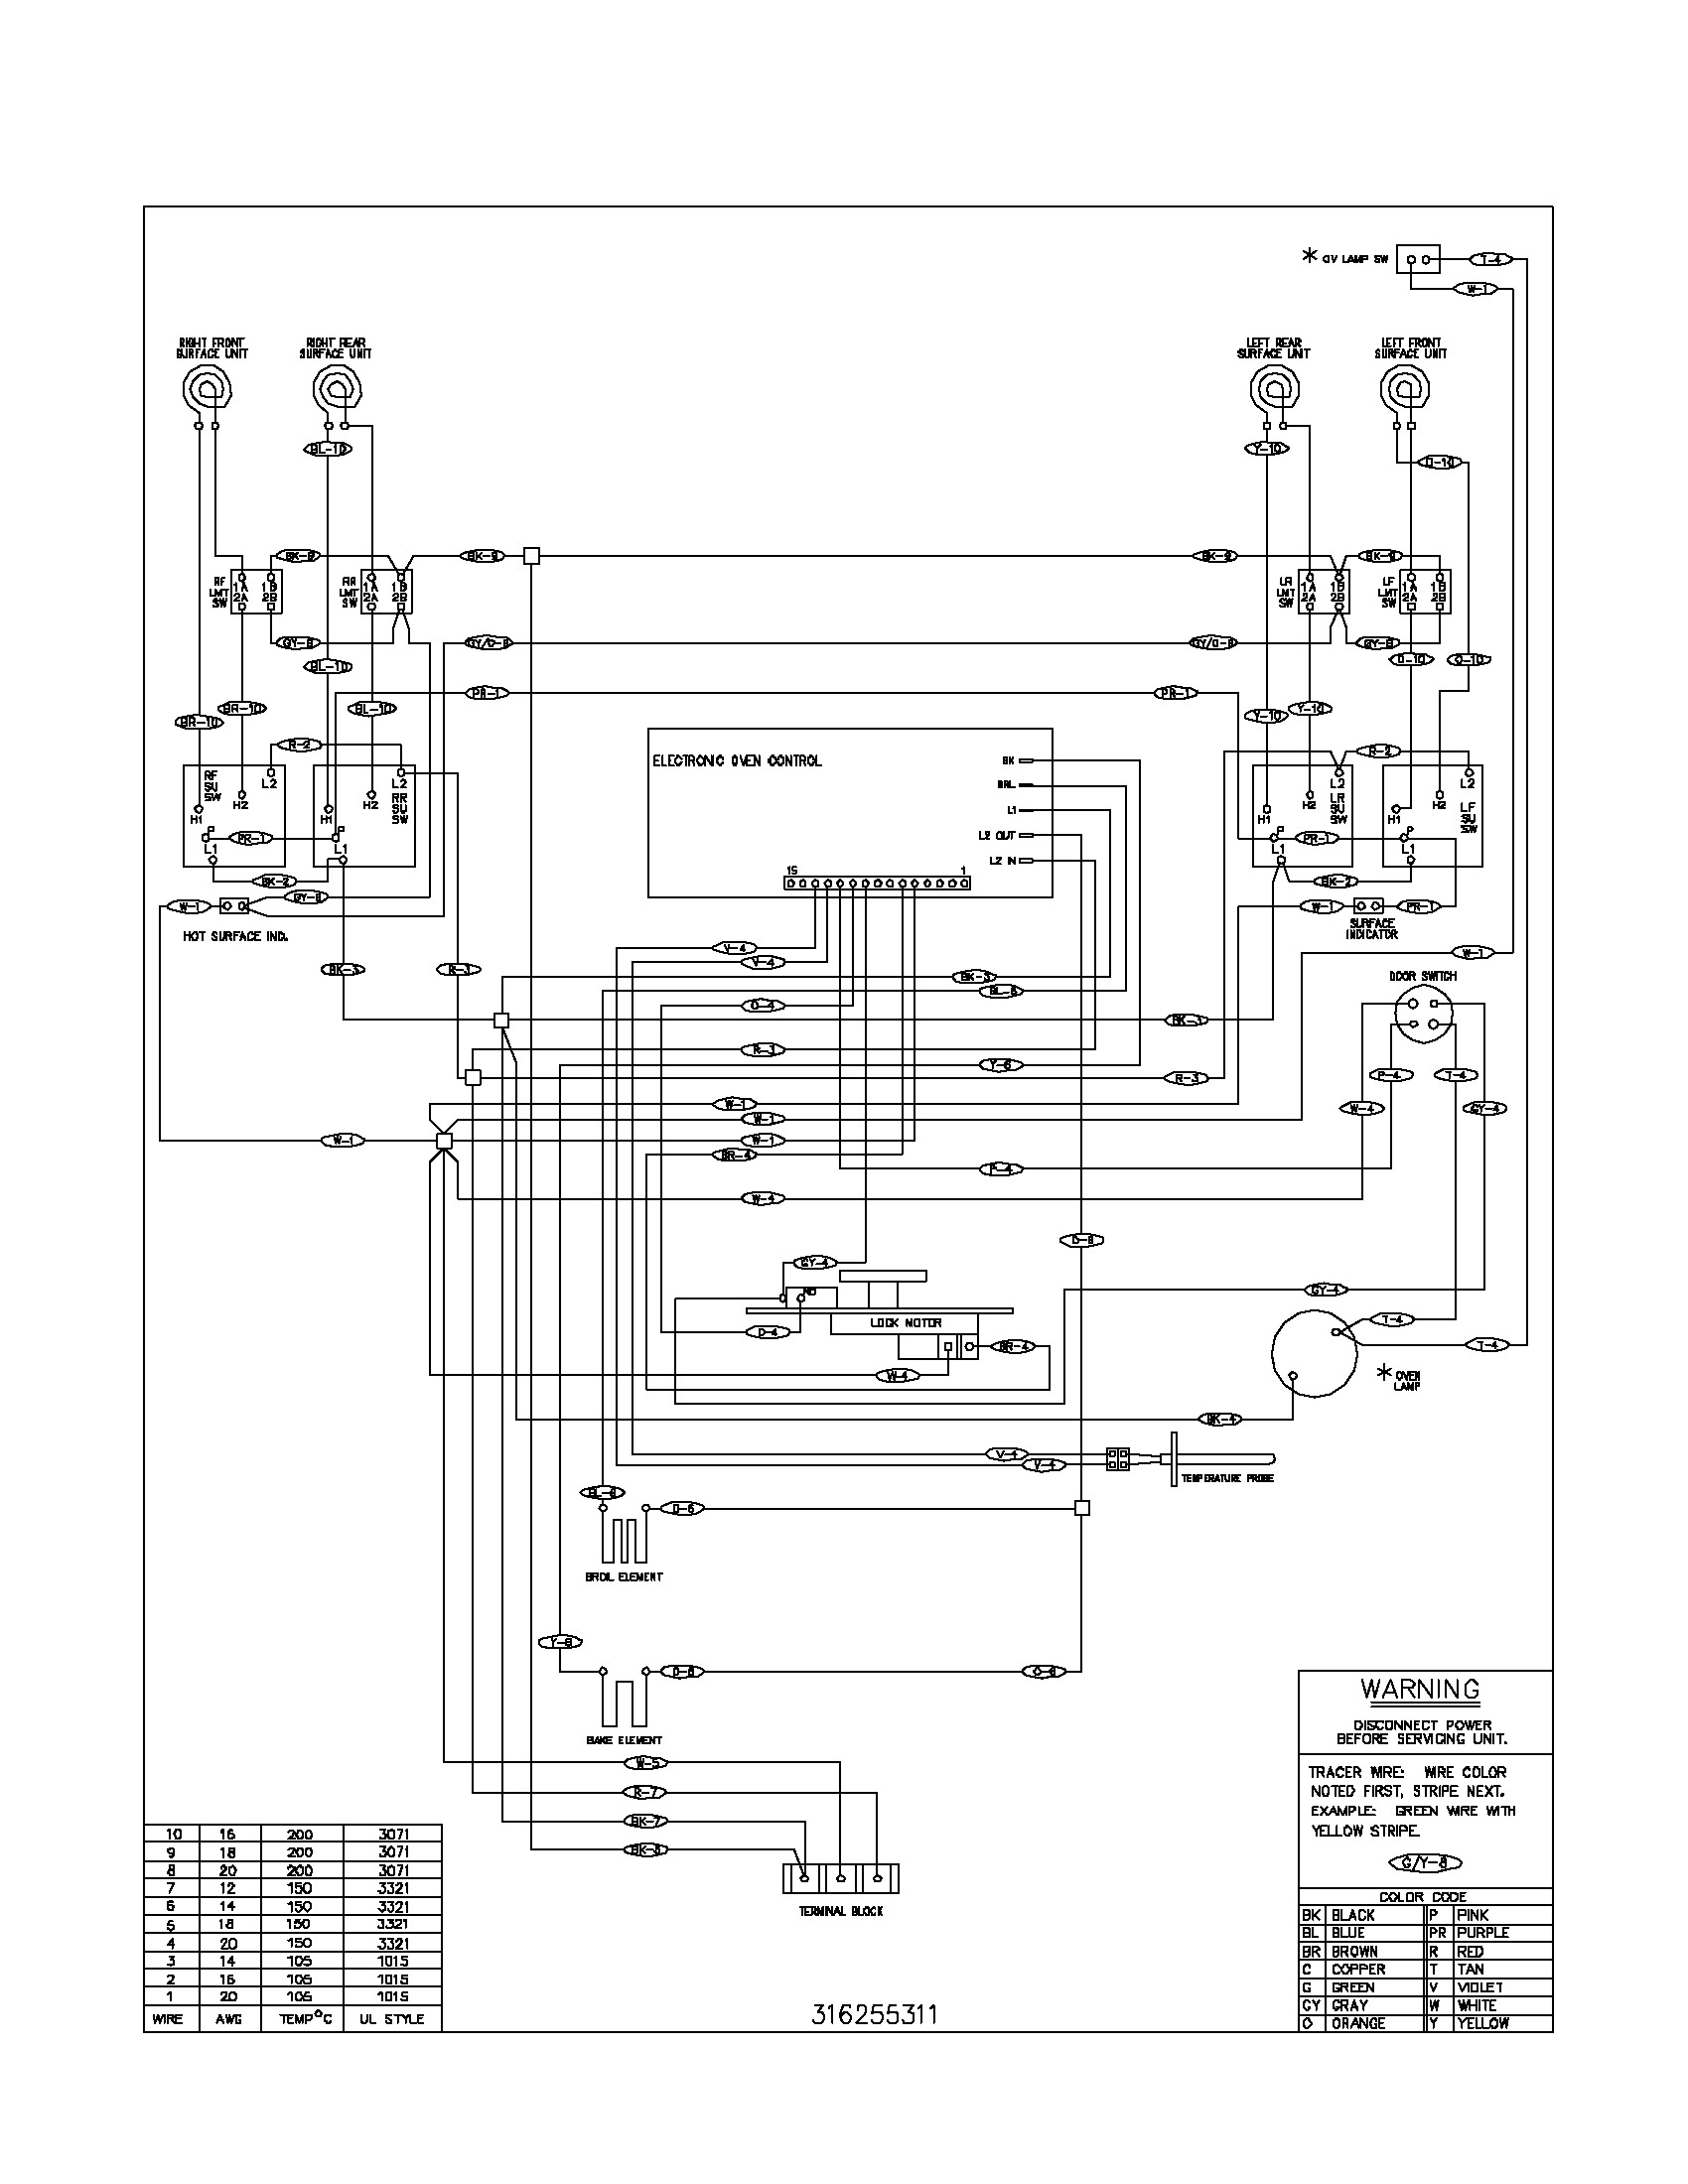 tappan gas oven wiring diagram for wall trusted schematic diagrams u2022 rh sarome co Tappan 36 Inch Gas Range Tappan Gas Stove Repair